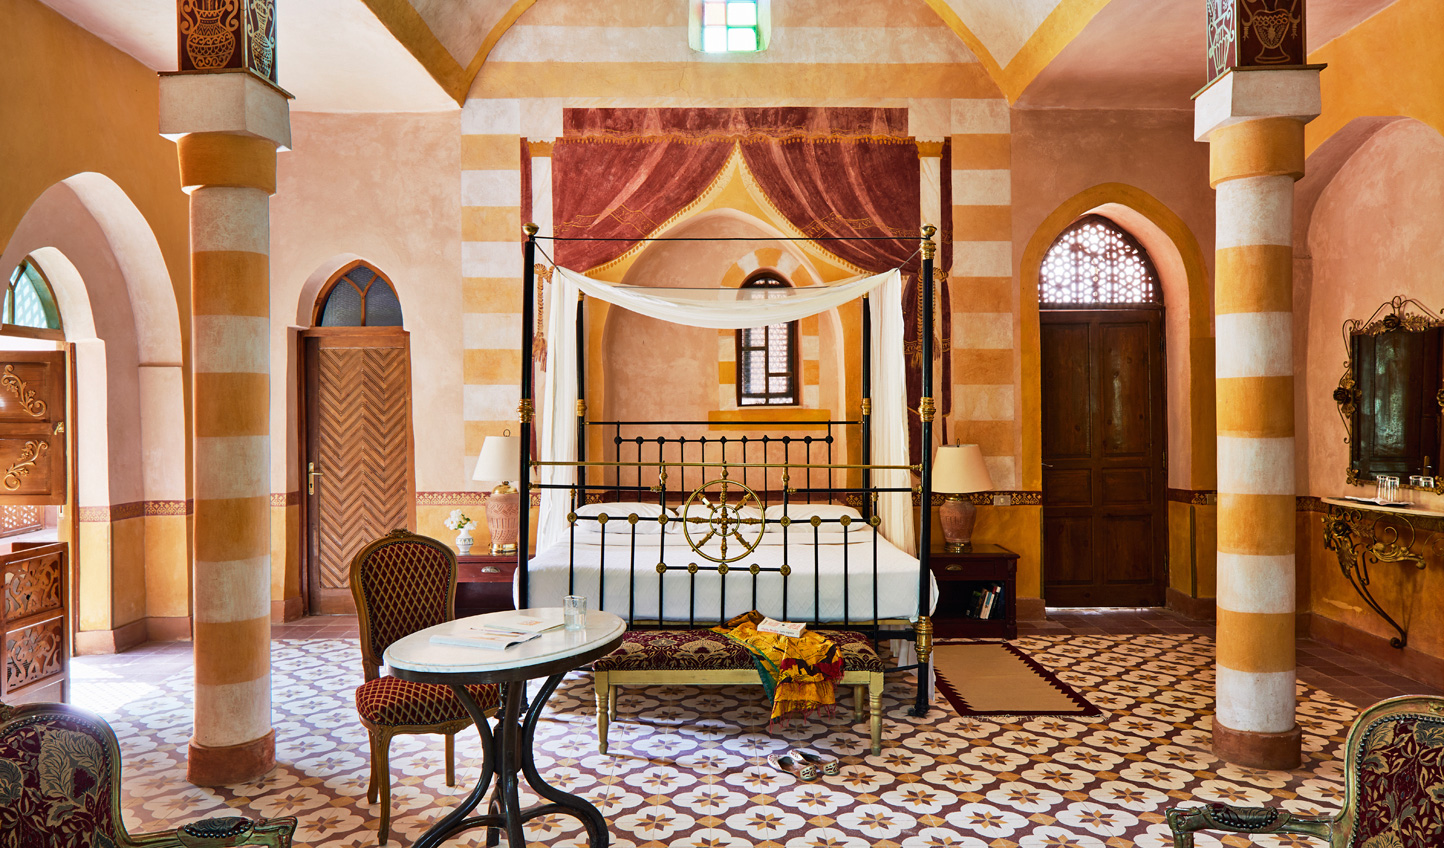 Slumber in a beautiful canopied bed surrounded by handpainted murals